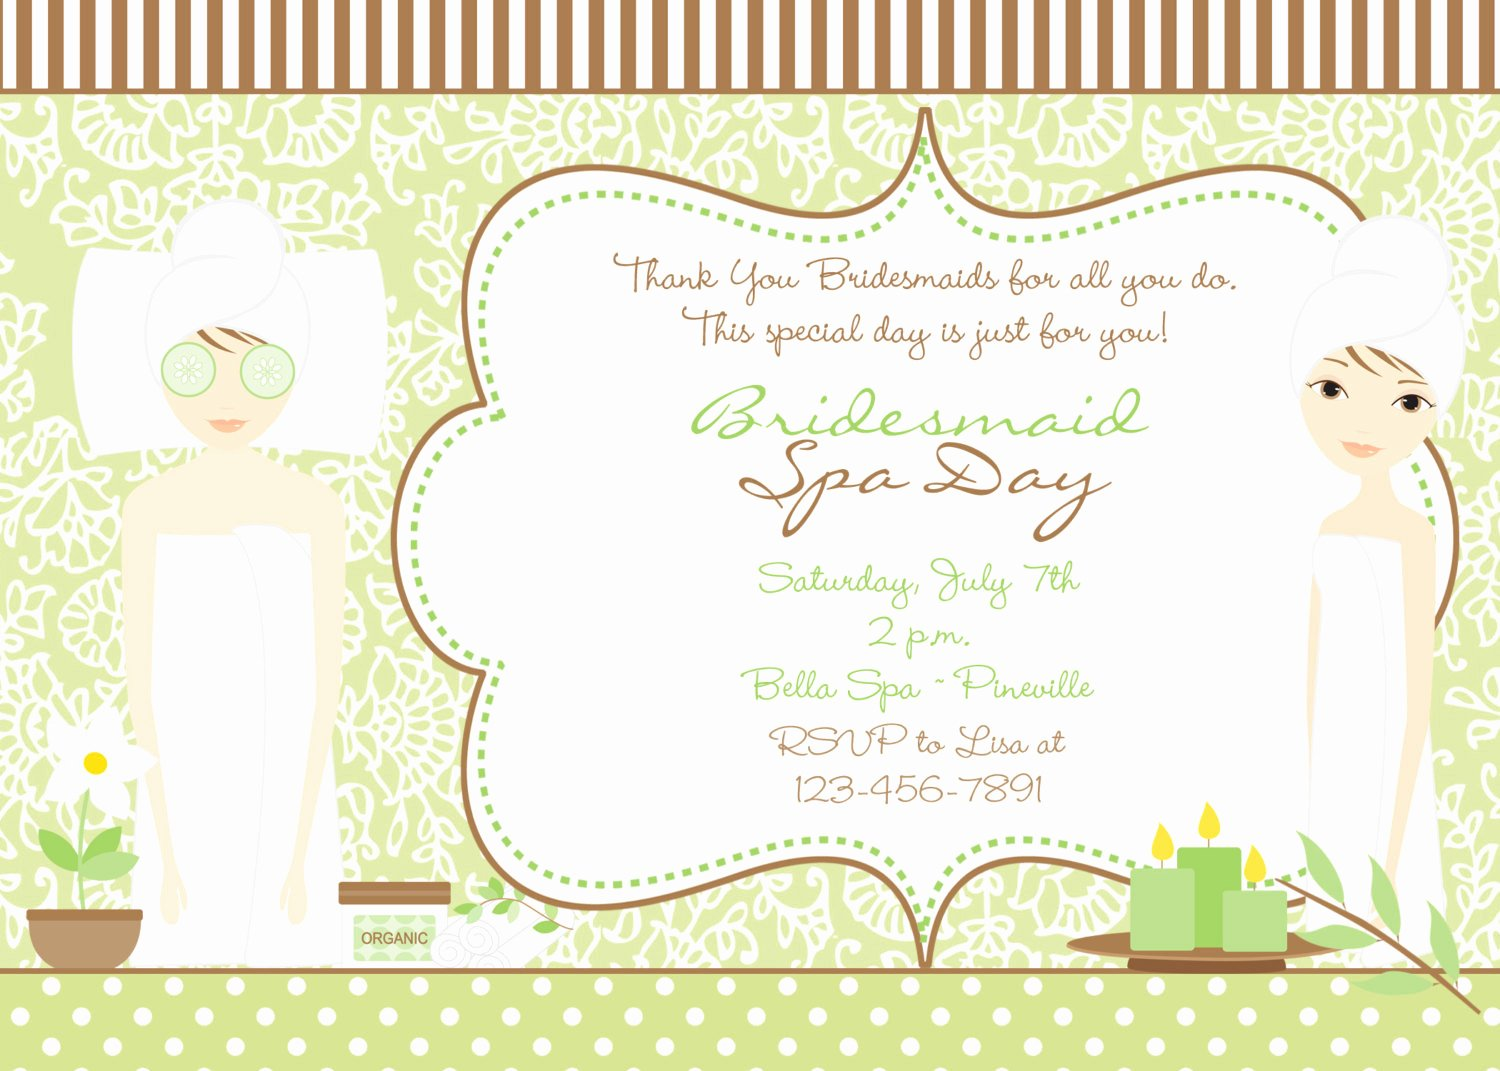 Spa Day Invitation Beautiful Spa Bridal Shower Invitation Green and Brown Bridal Spa Day